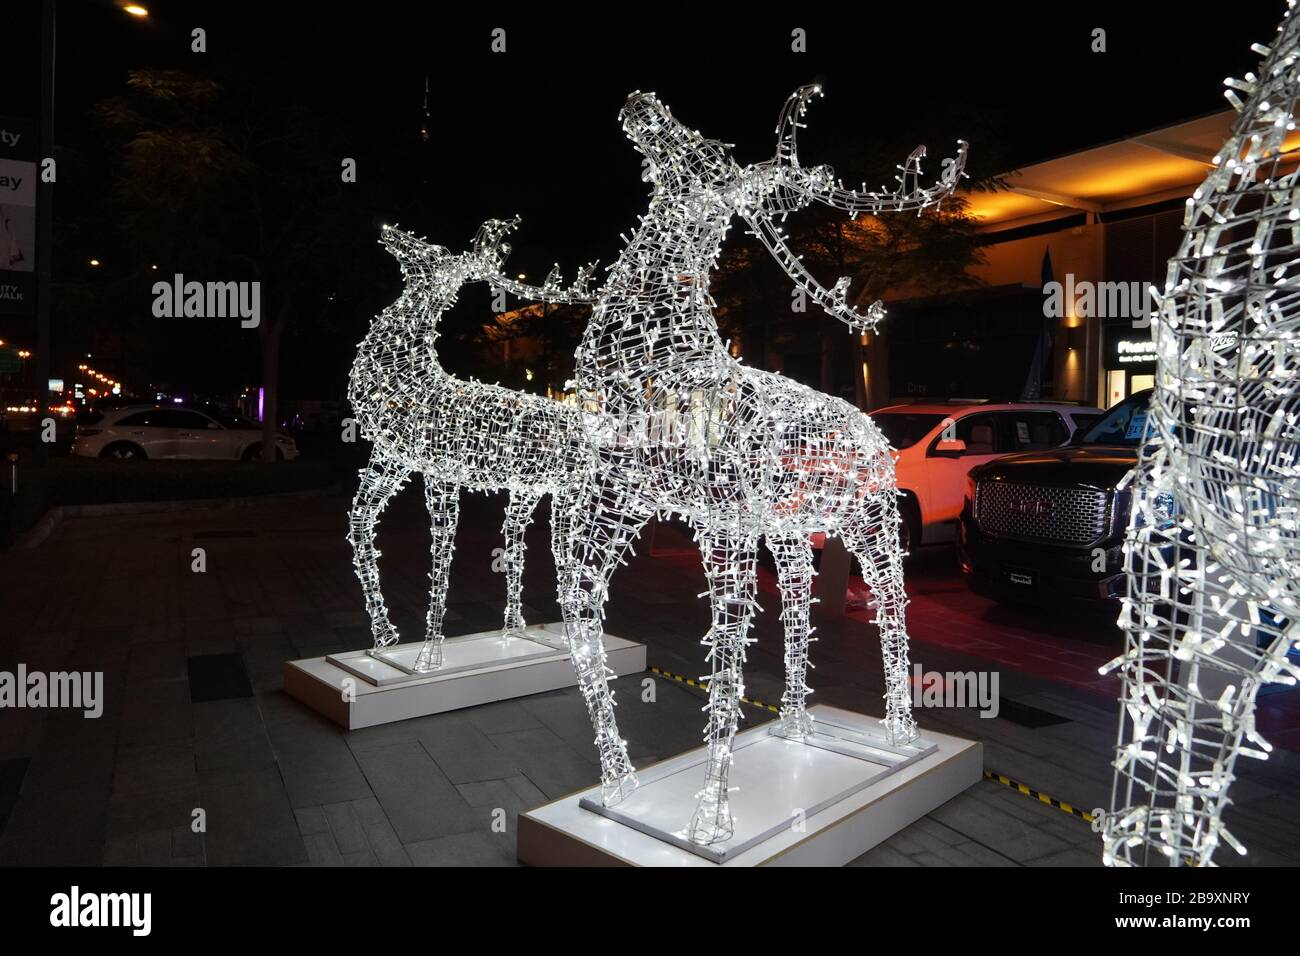 Glowing reindeer made of wire and light bulbs. Christmas decorations. Christmas Lights on reindeer shape wire frame mesh. Deer Christmas outdoor decor Stock Photo